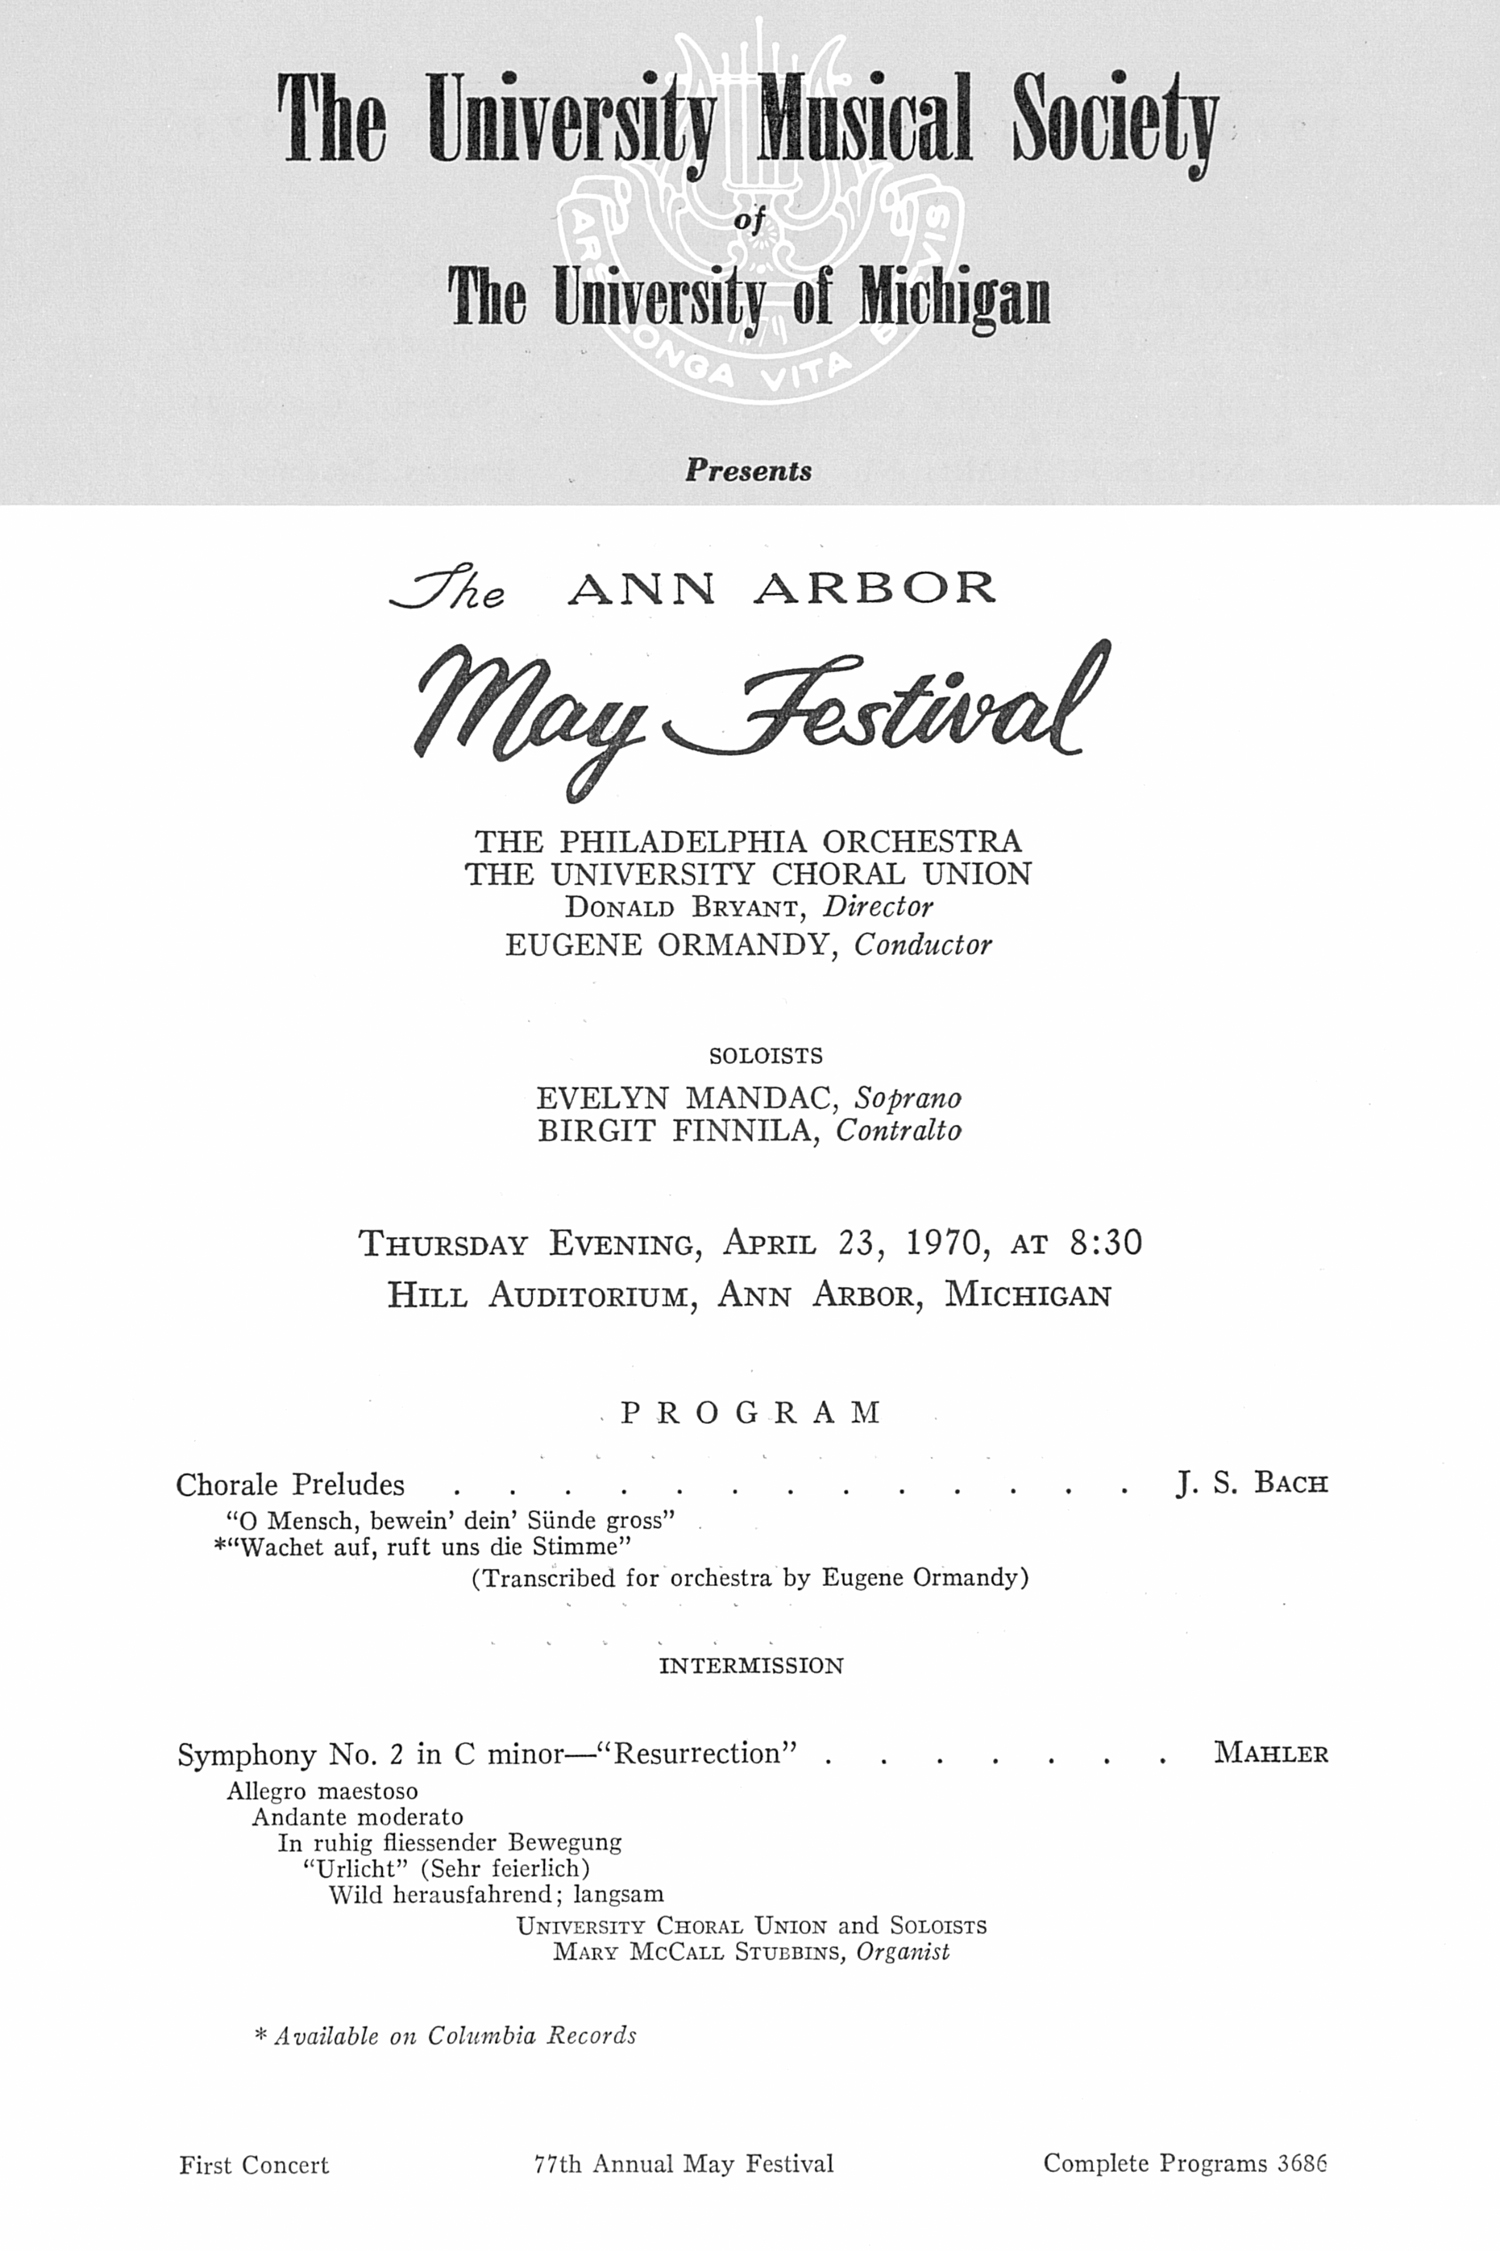 UMS Concert Program, April 23, 1970: The Ann Arbor May Festival -- The Philadelphia Orchestra image